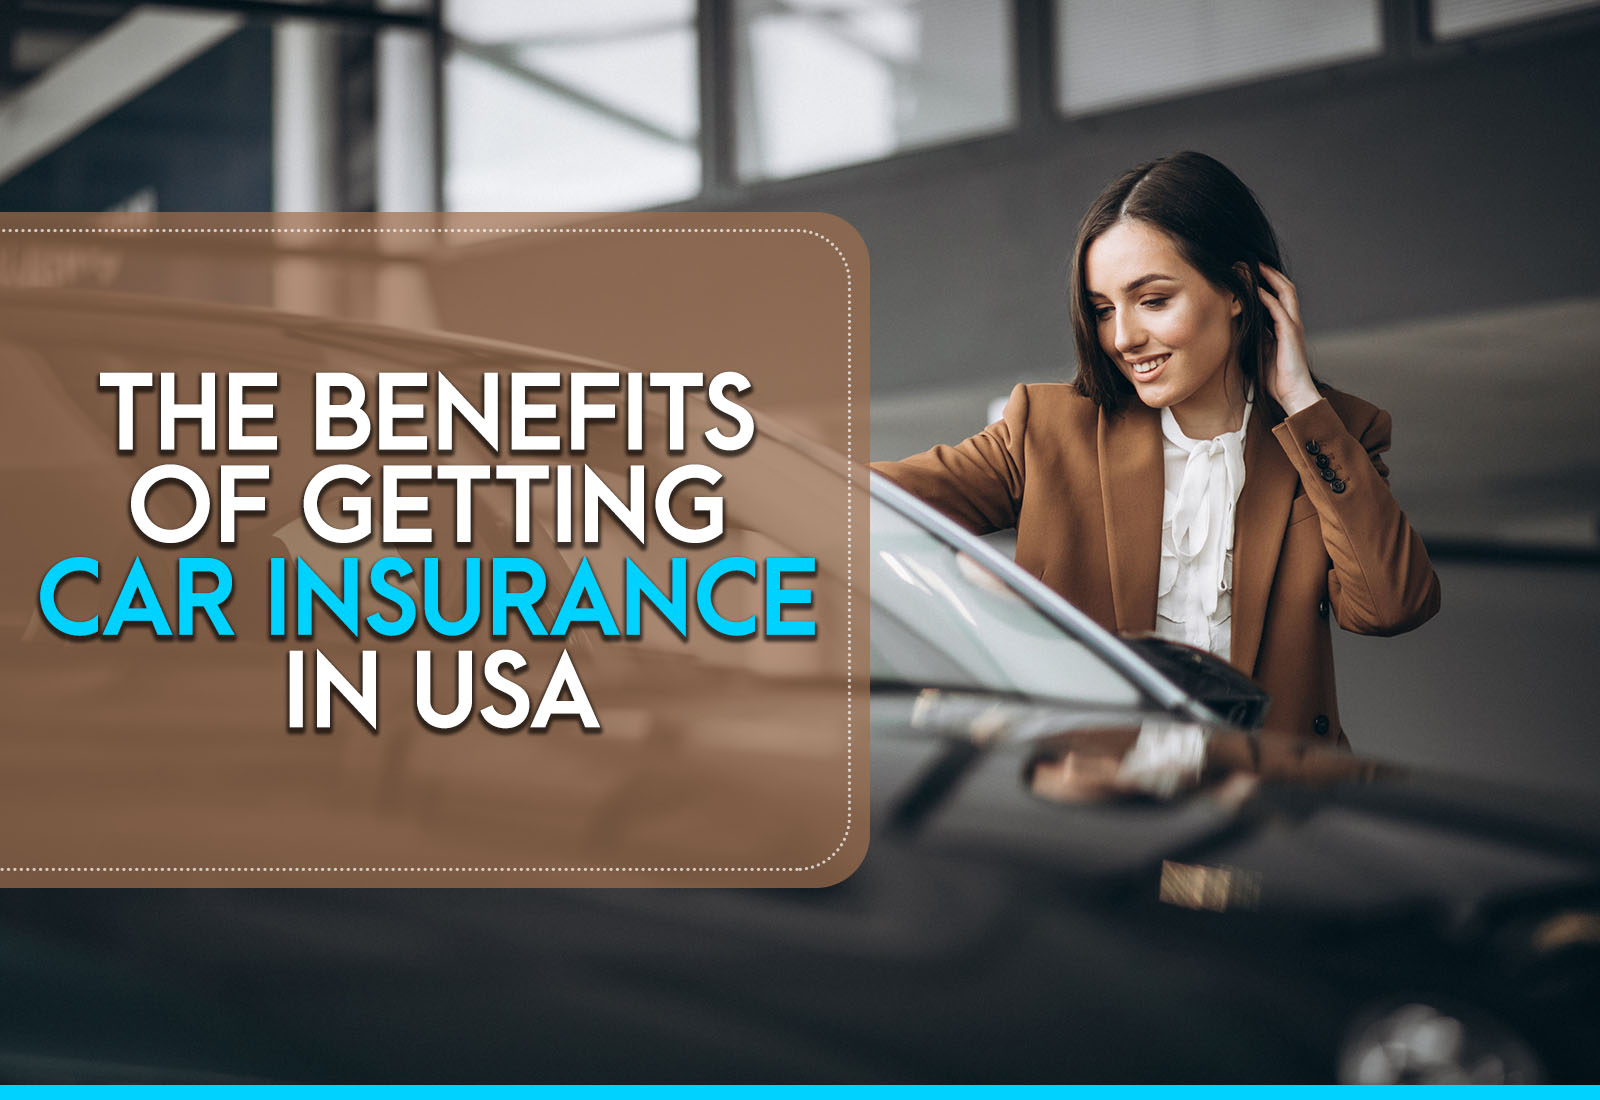 The Benefits of Getting Car Insurance in USA